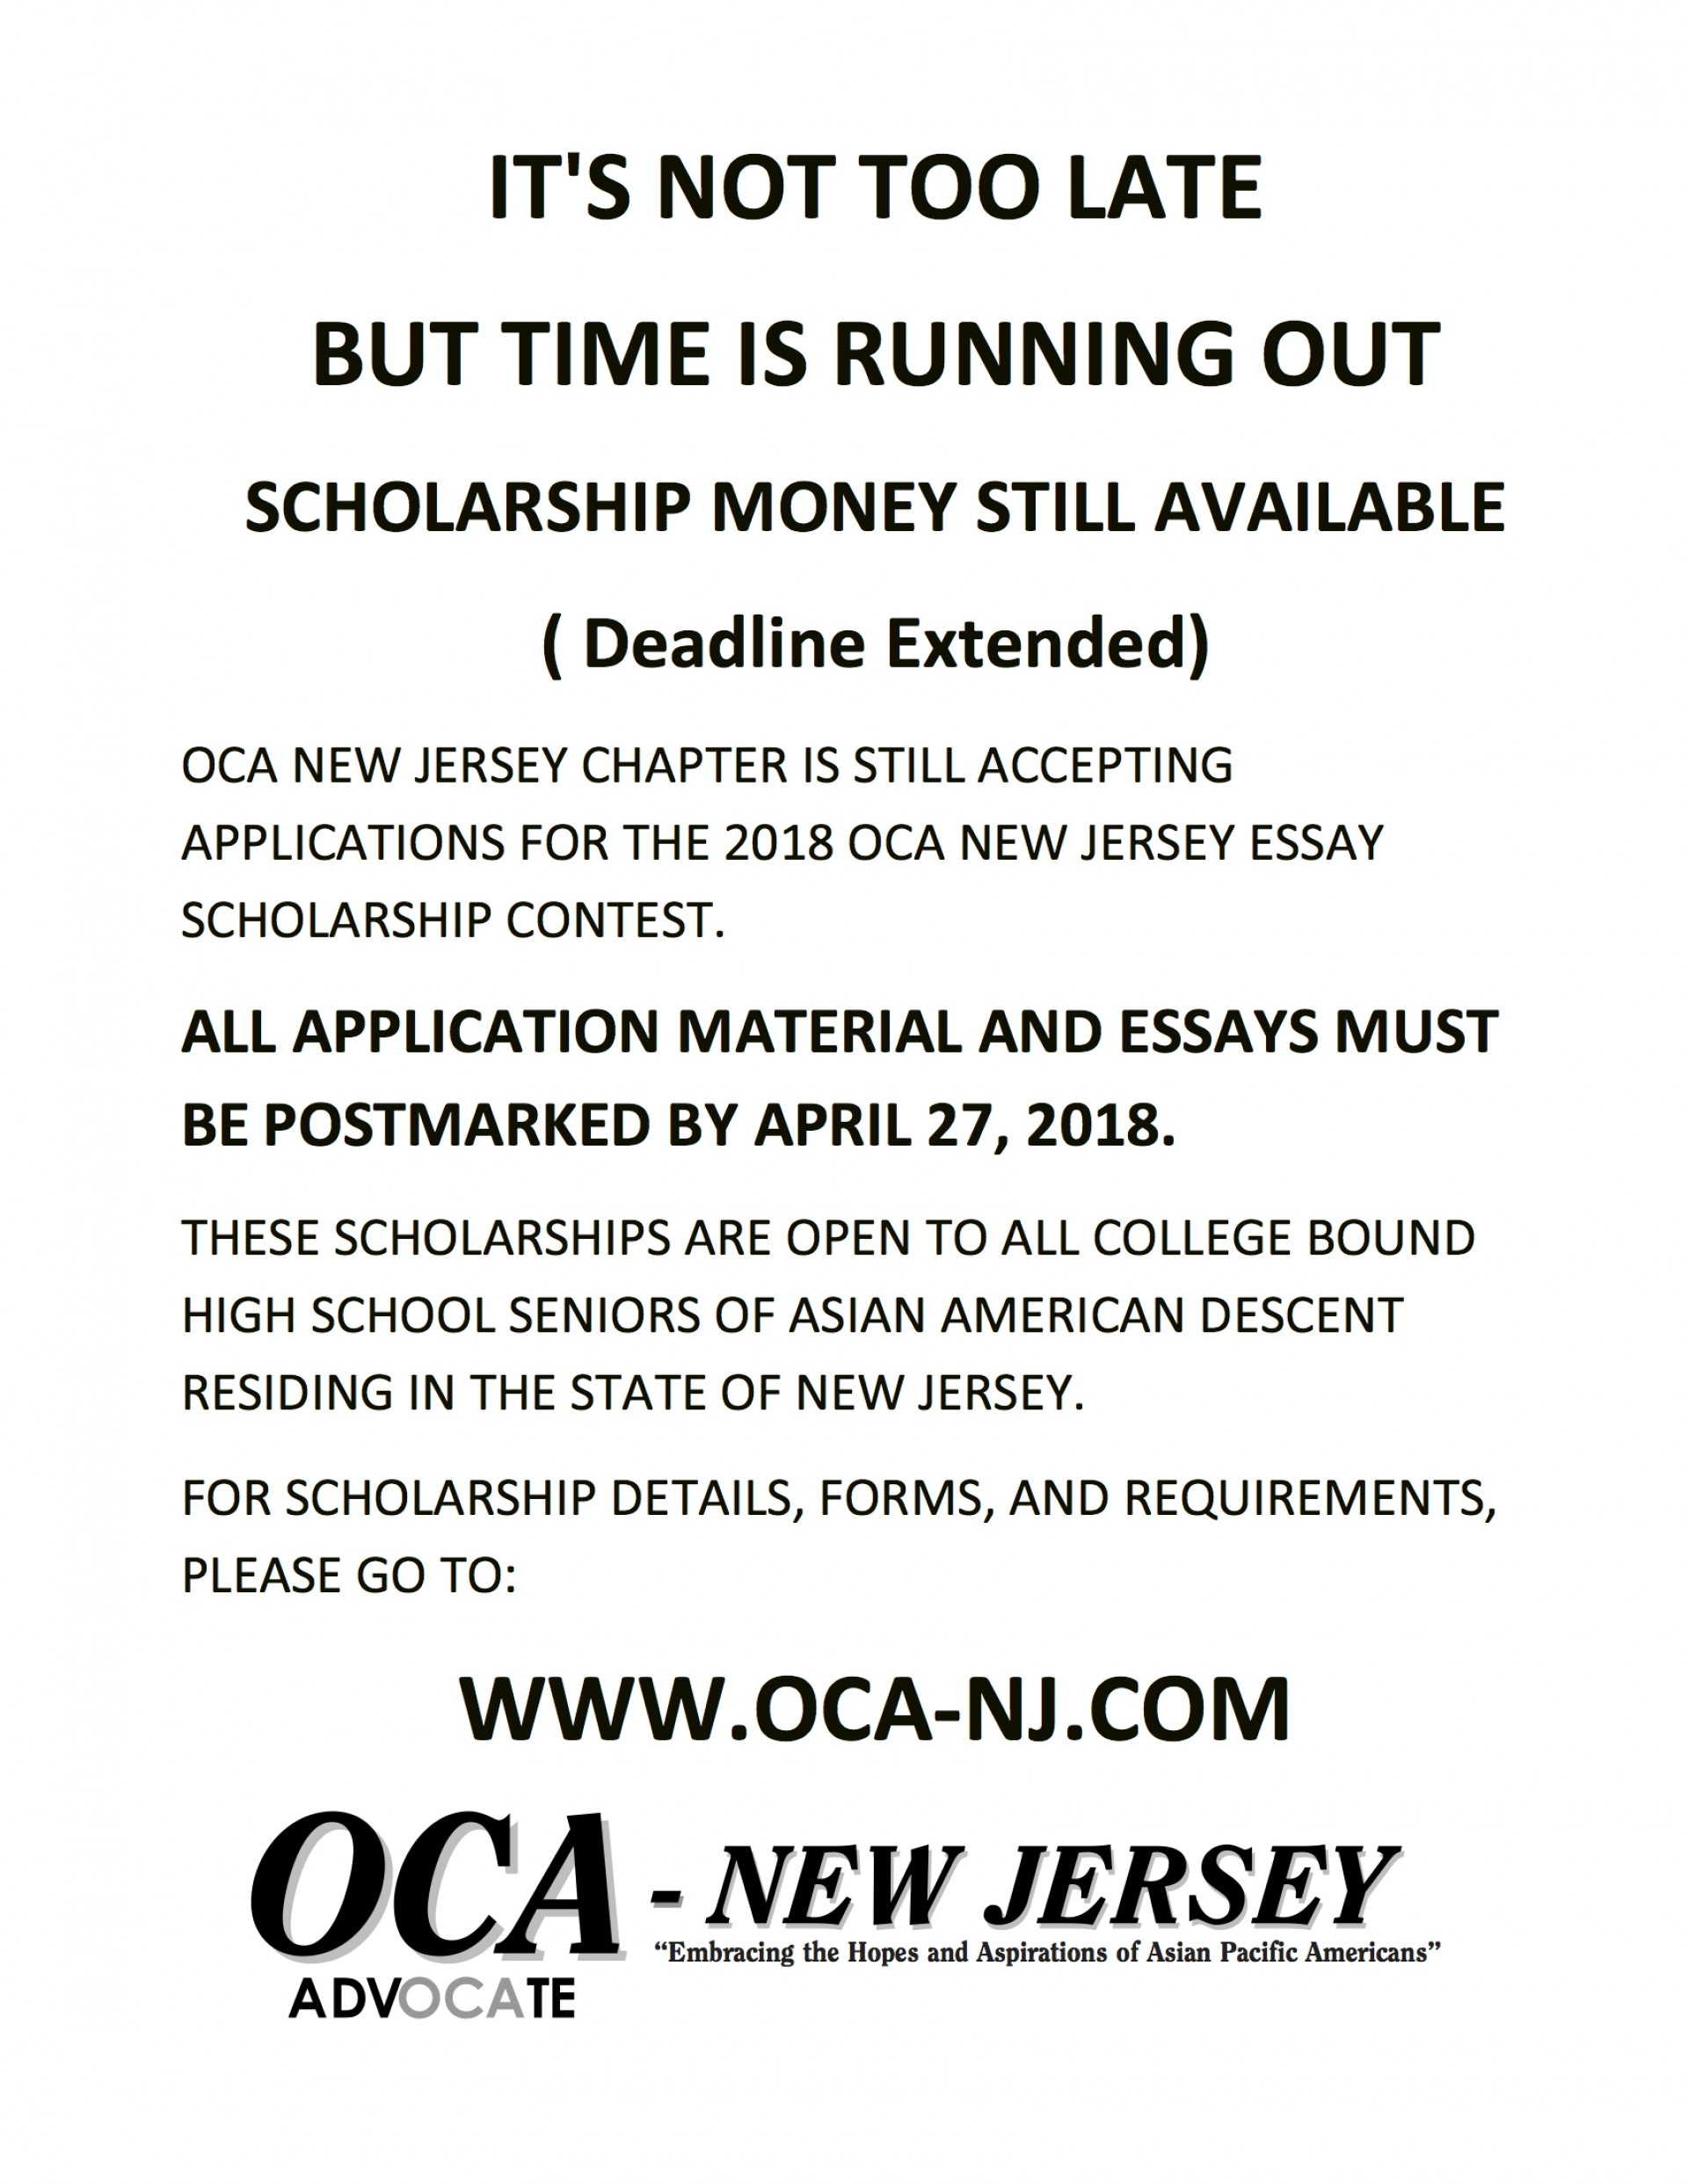 014 Essay Example Scholarships Entended Deadline Oca Nj Shocking 2018 Canada 2019 No For High School Juniors 1920